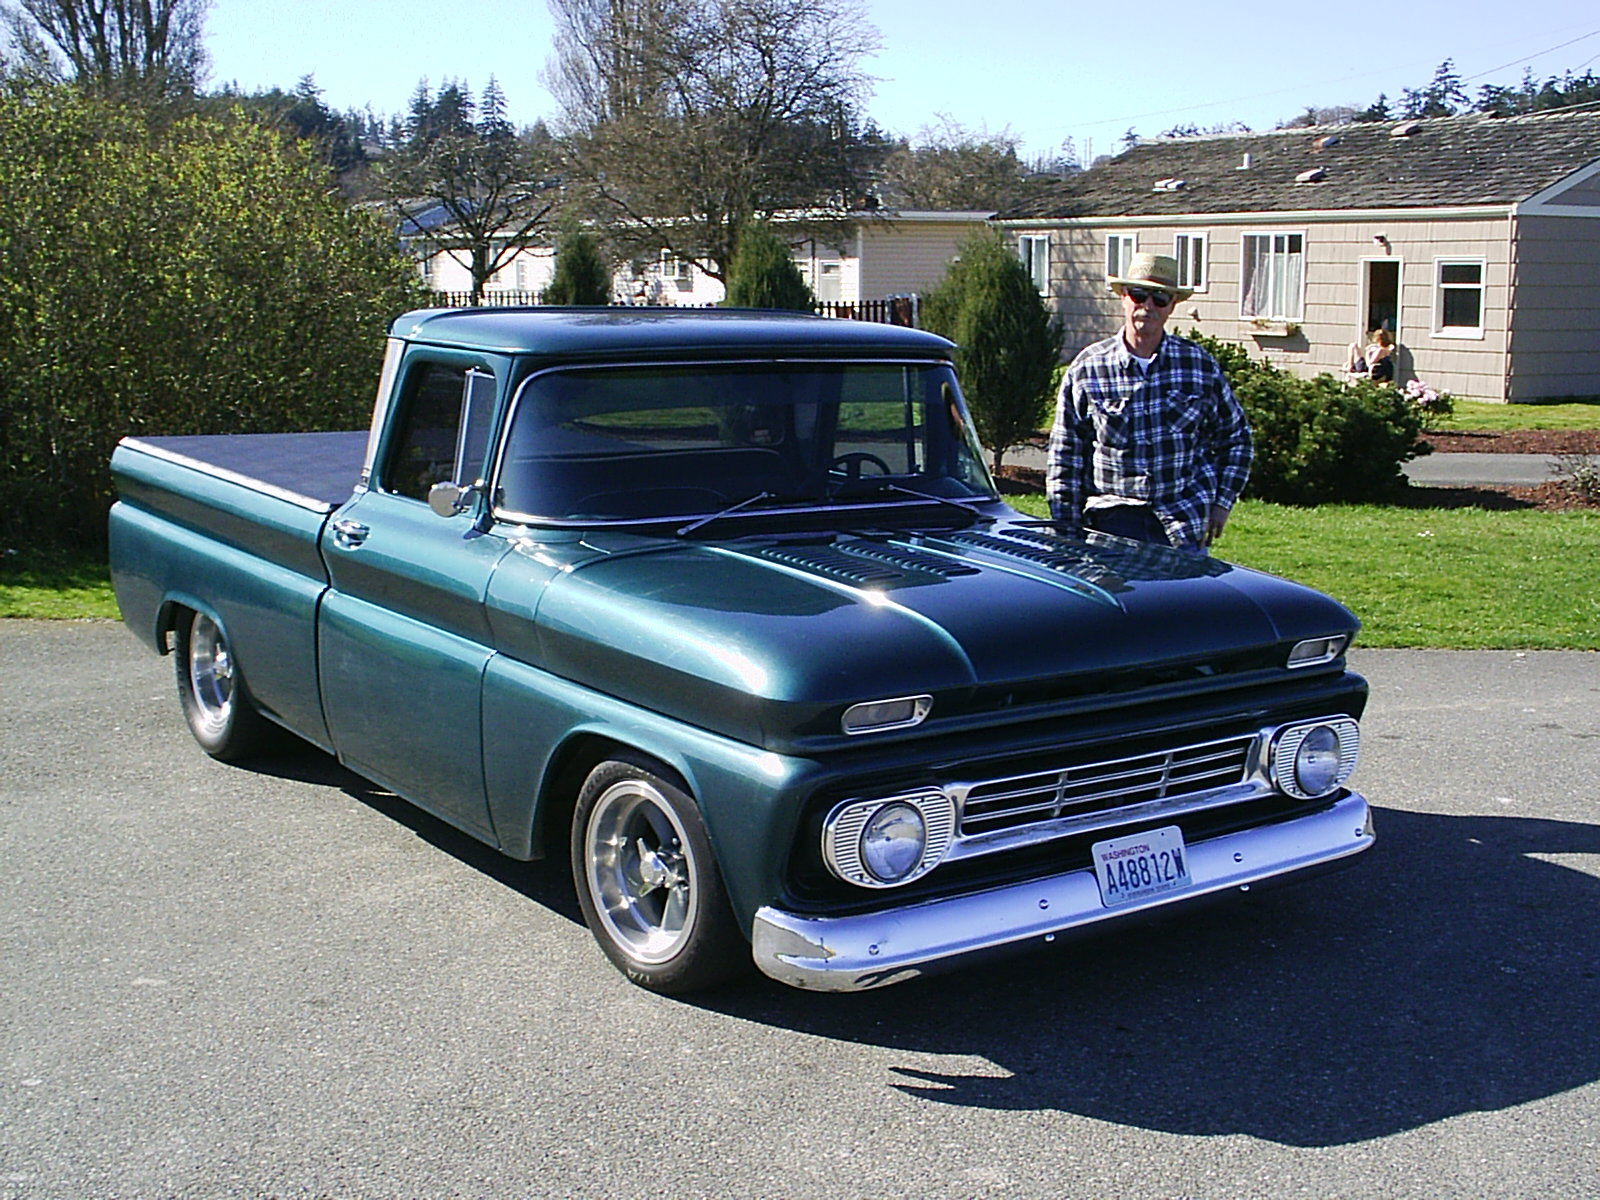 Chevrolet pickup 1963 photo - 4